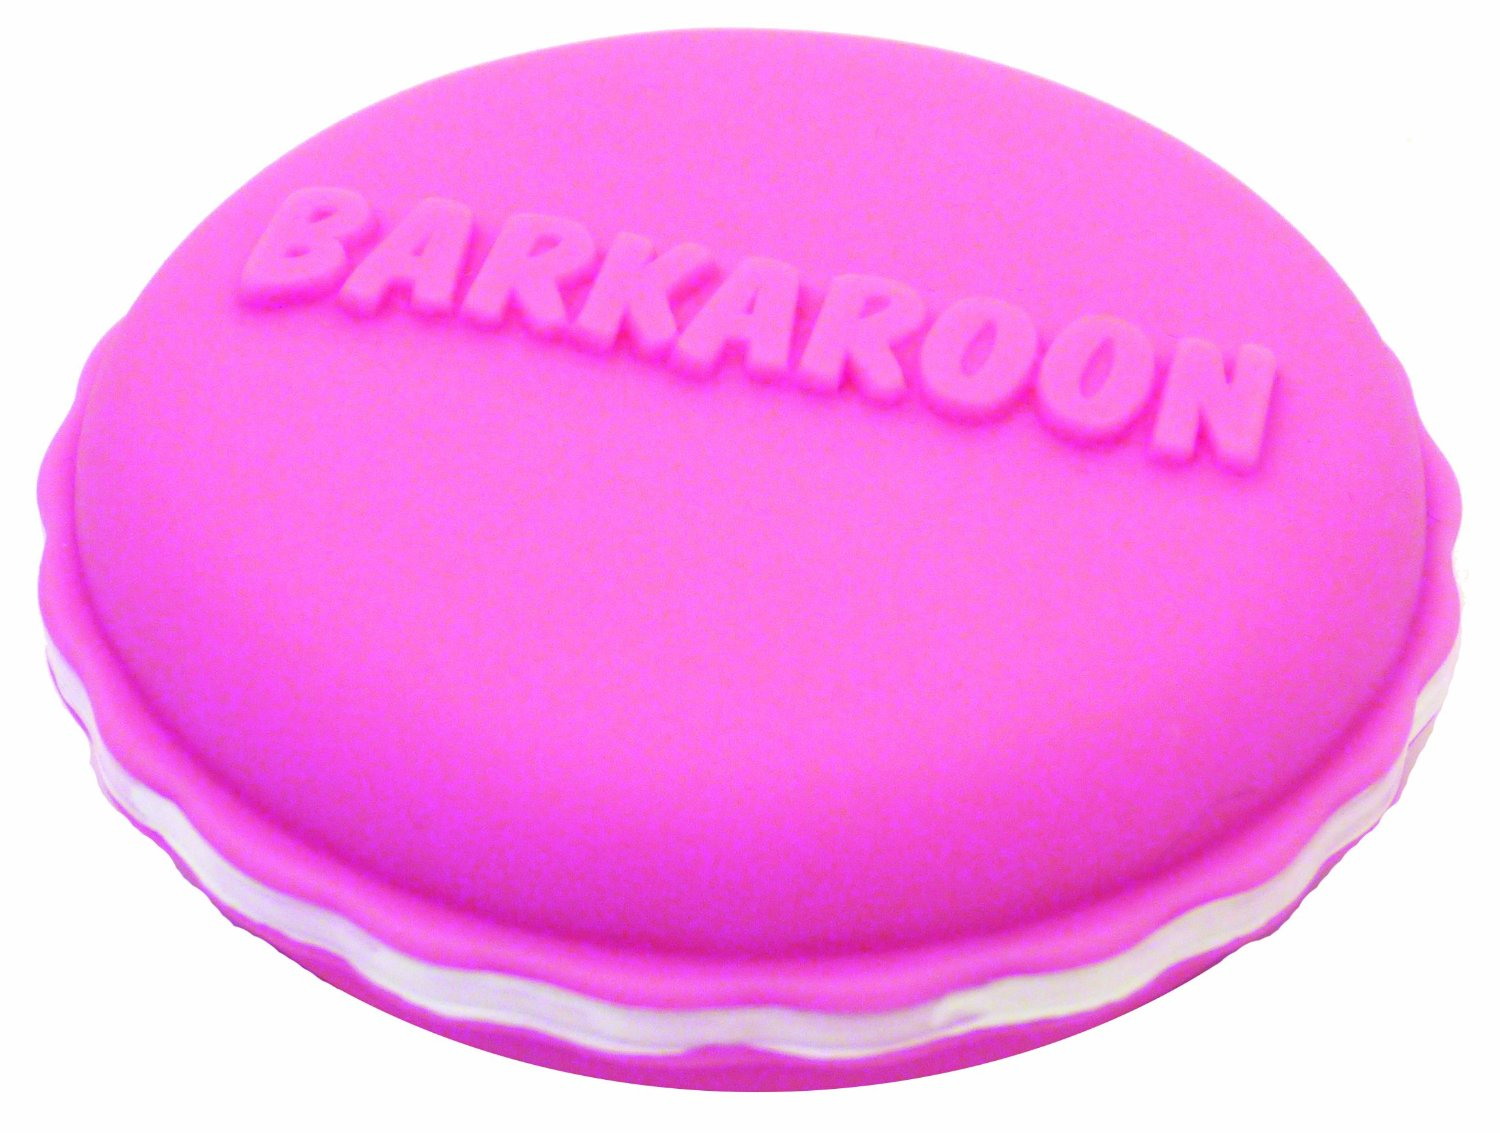 Jolly Doggy Barkaroon Biscuit Dog Toy